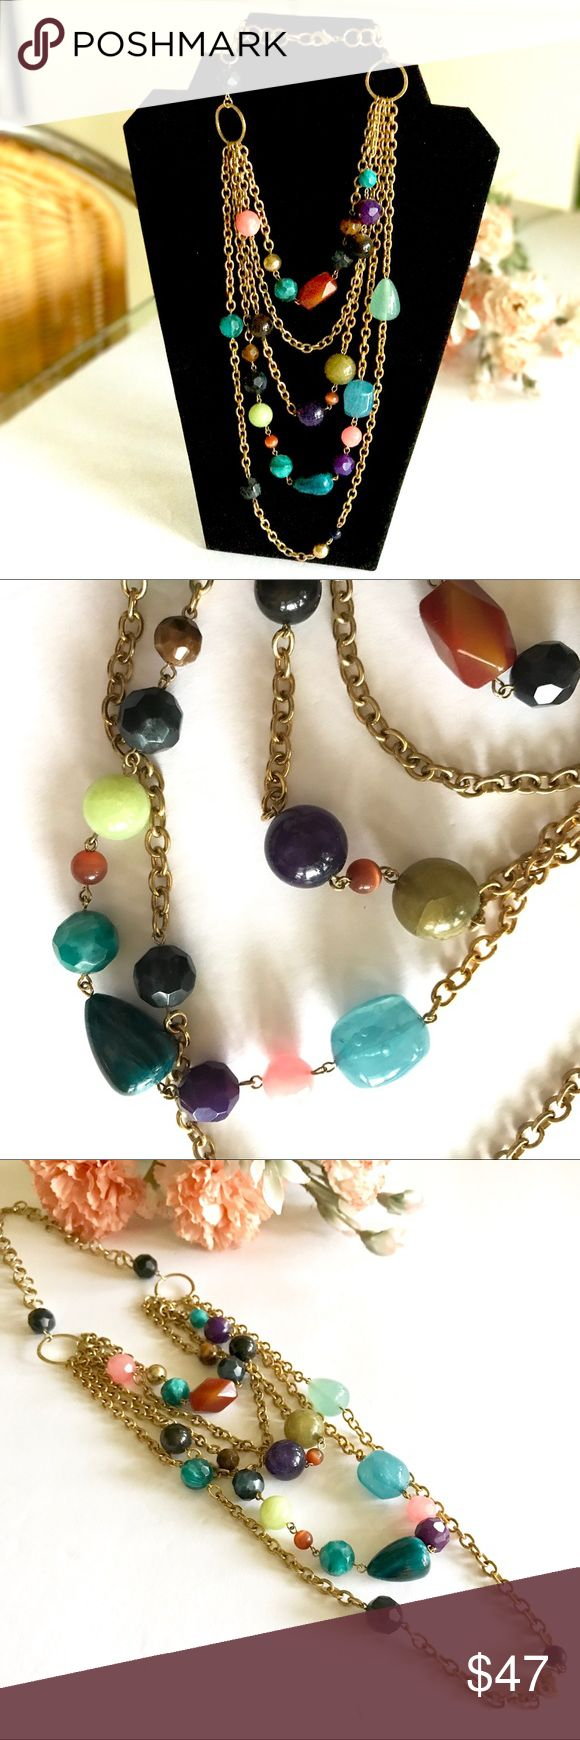 LISTING: Multi strand beaded chain necklace Beautiful long necklace hangs 34 inches total, lobster claw closure. Goldtone chain with multiple colored stone like beads. Gently pre-loved. Goes with so many outfits! Jewelry Necklaces